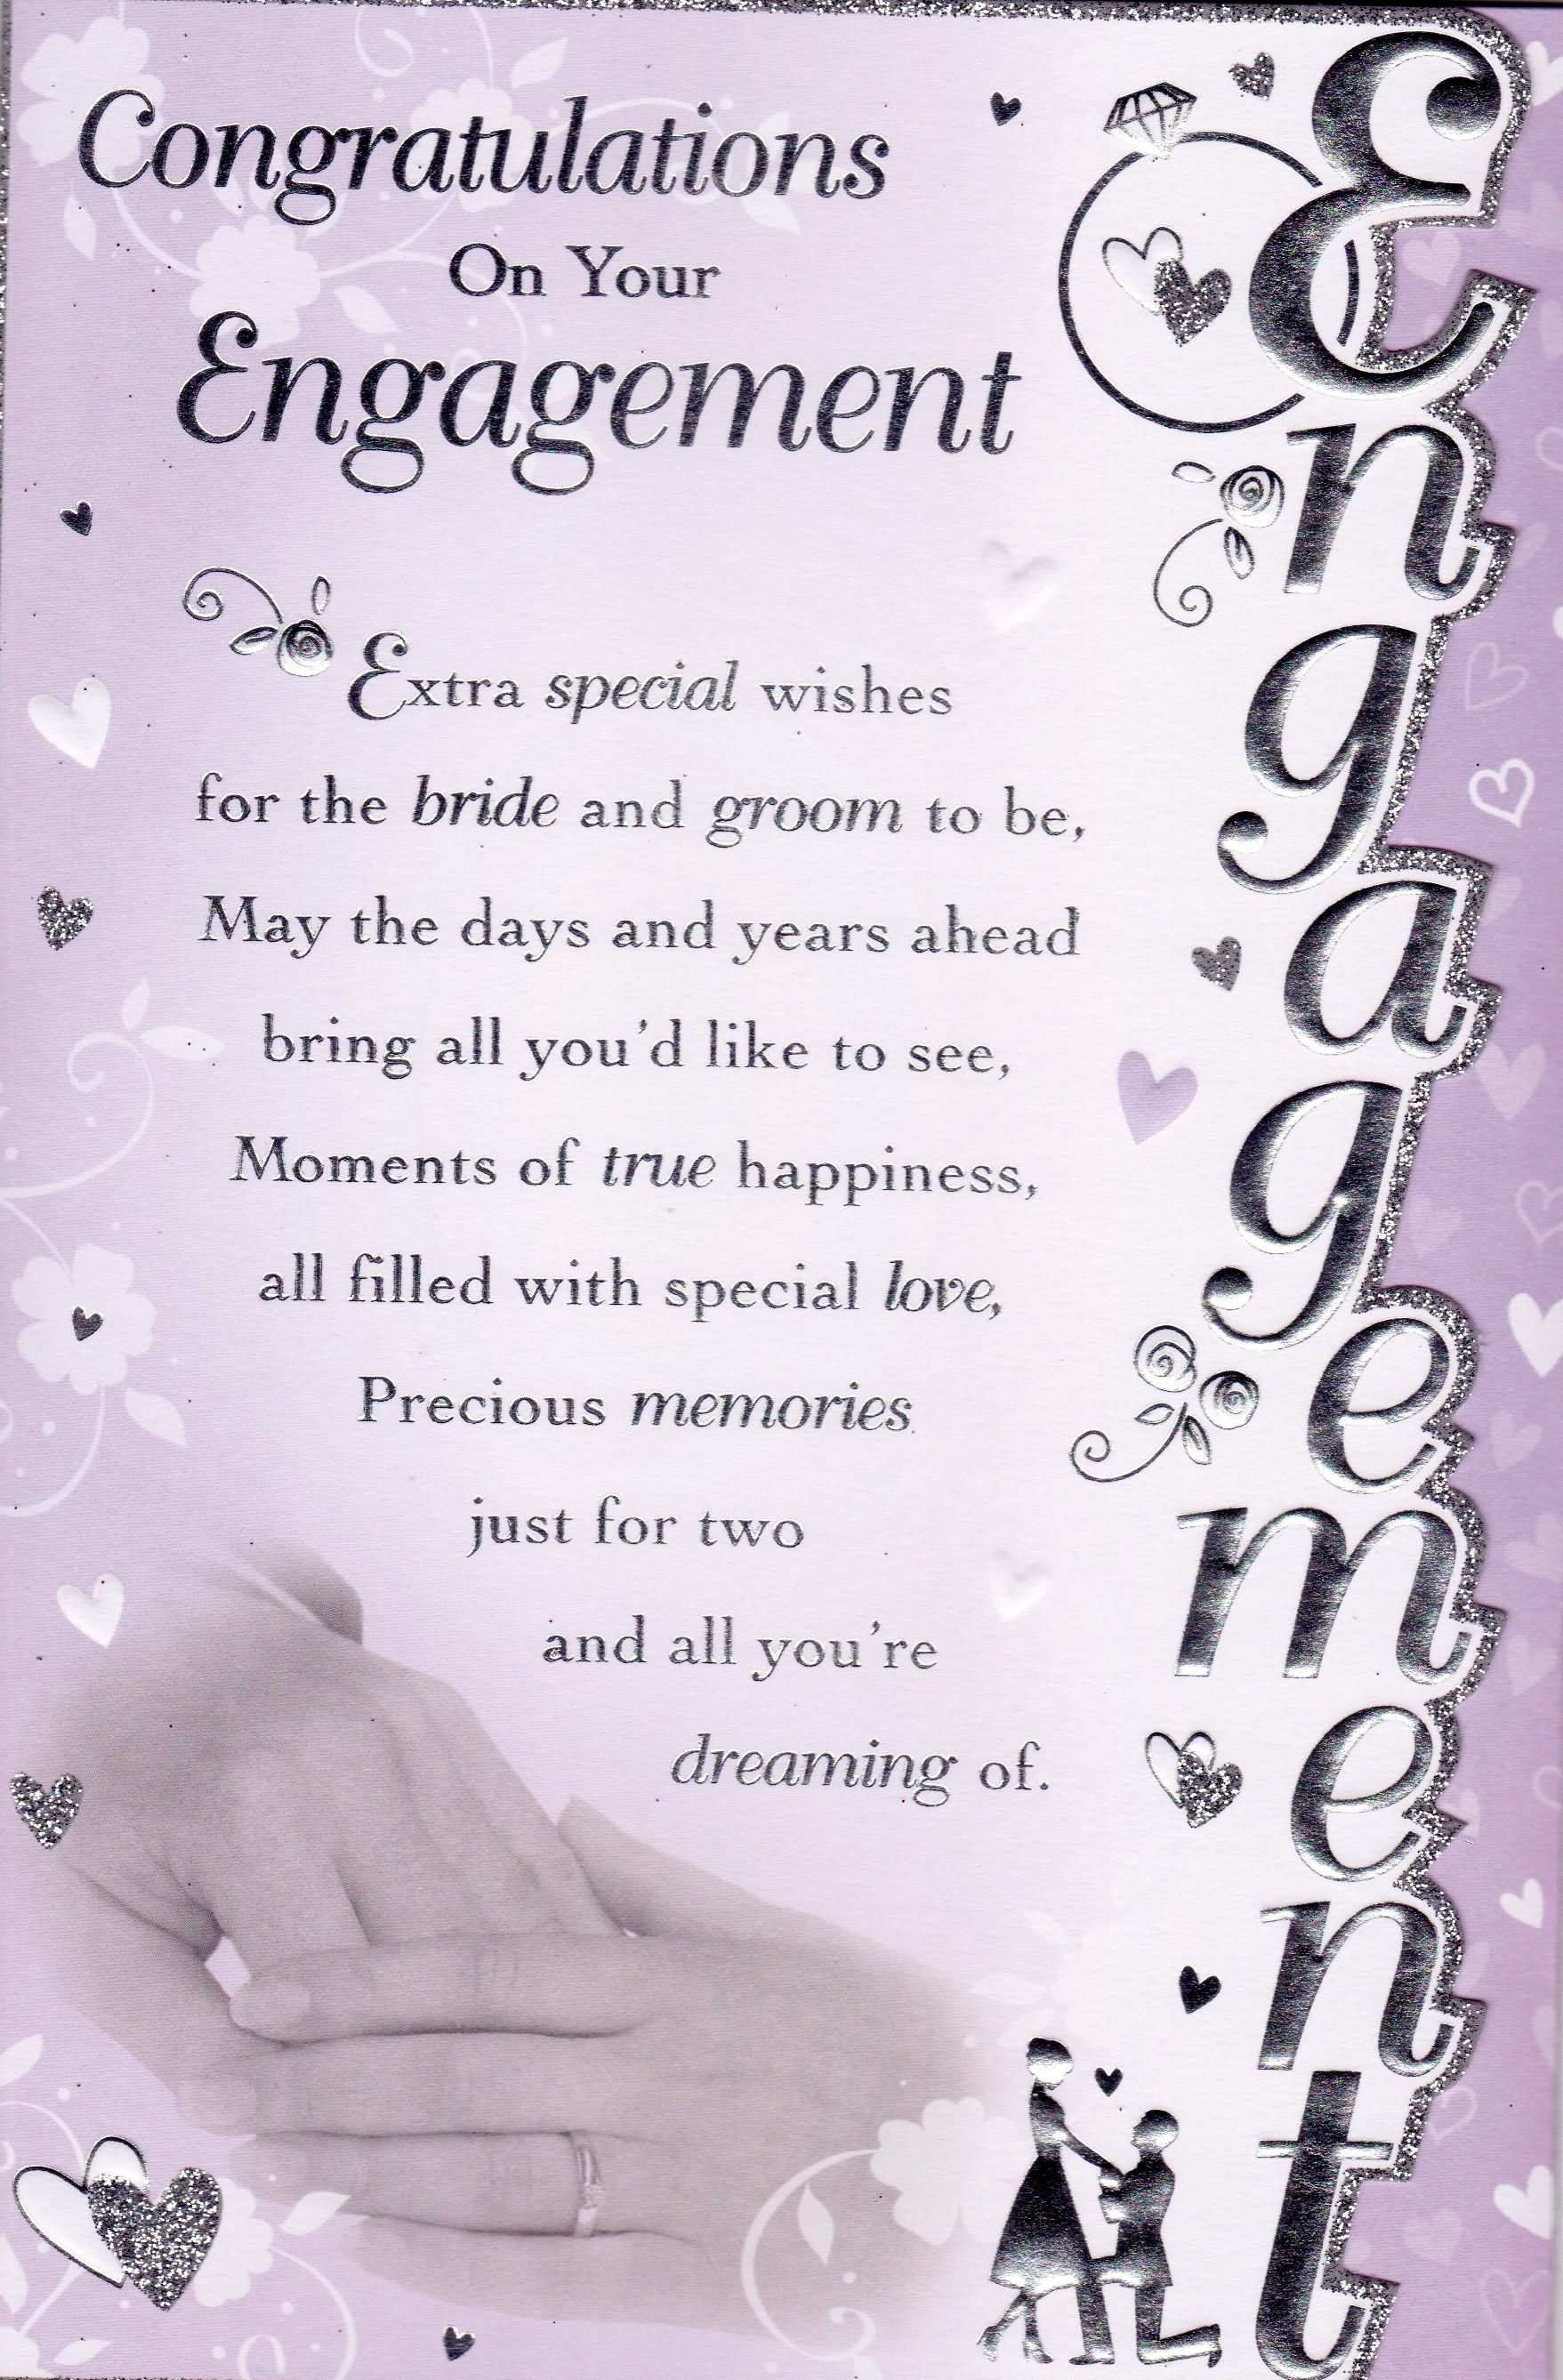 Congratulations On Your Engagement Greeting Card Flo Pinterest